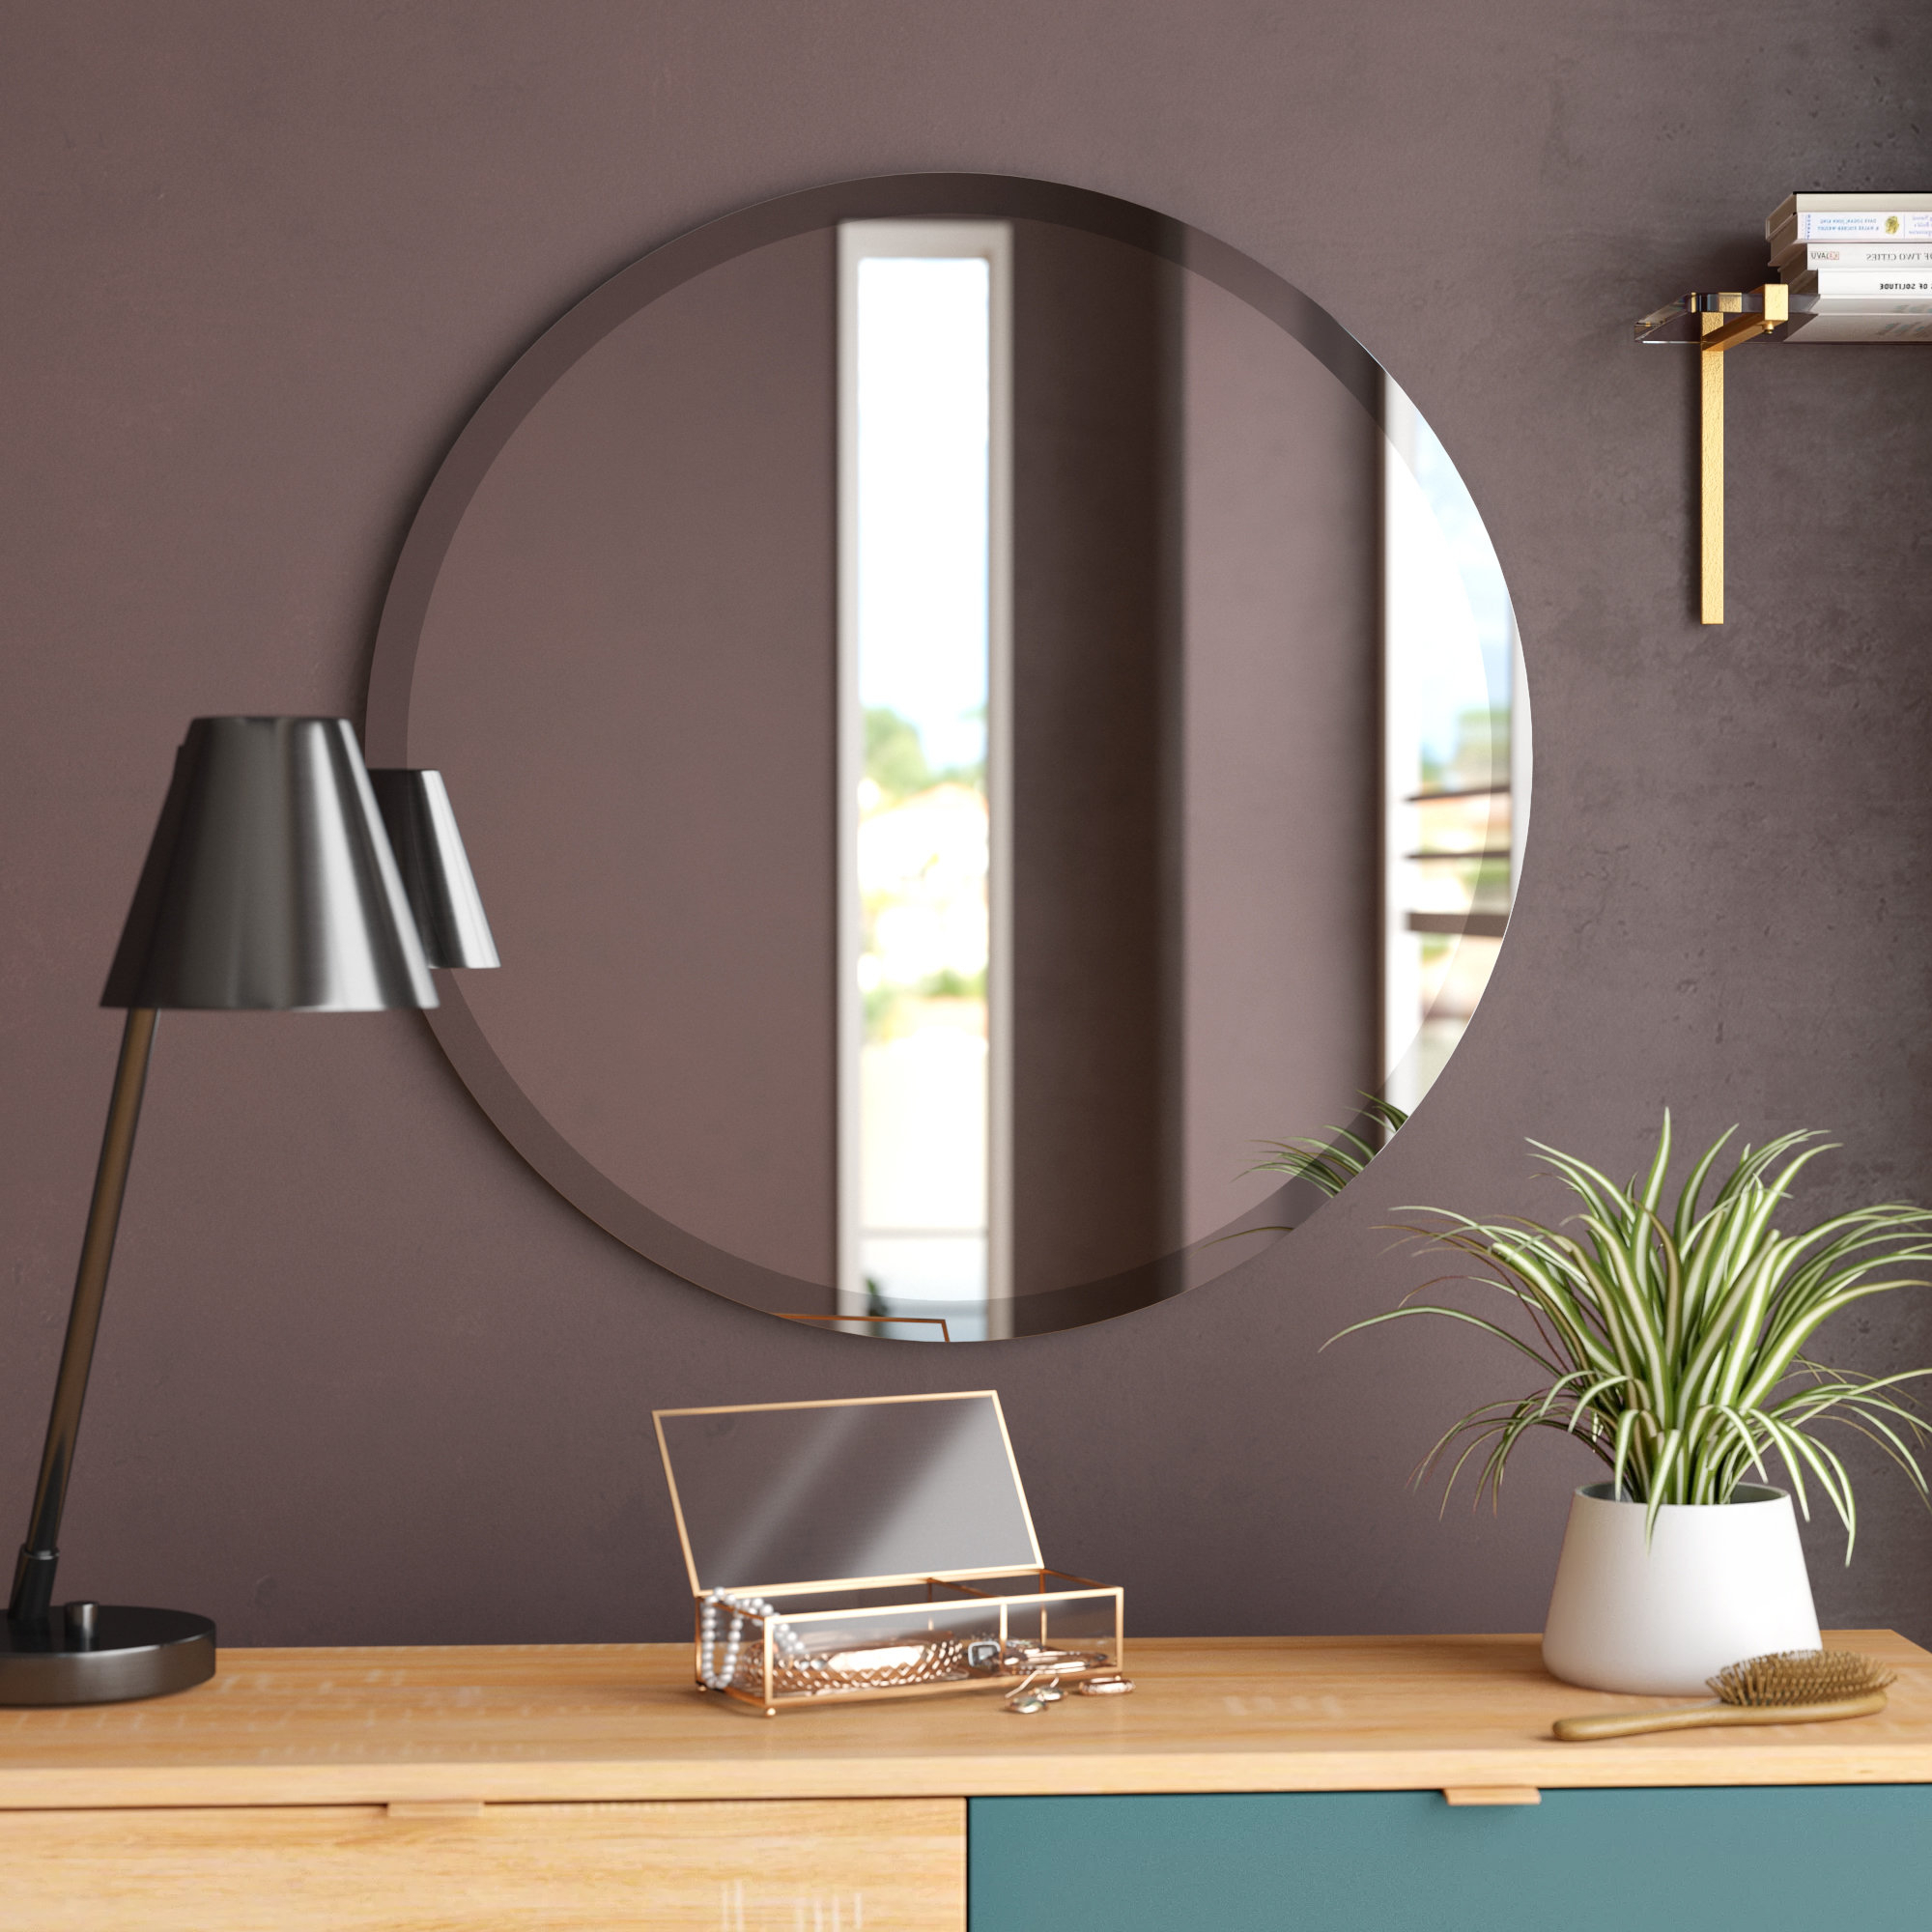 Celeste Frameless Round Wall Mirrors Intended For Well Known Langley Street Valdosta Frameless Round Wall Mirror (View 11 of 20)